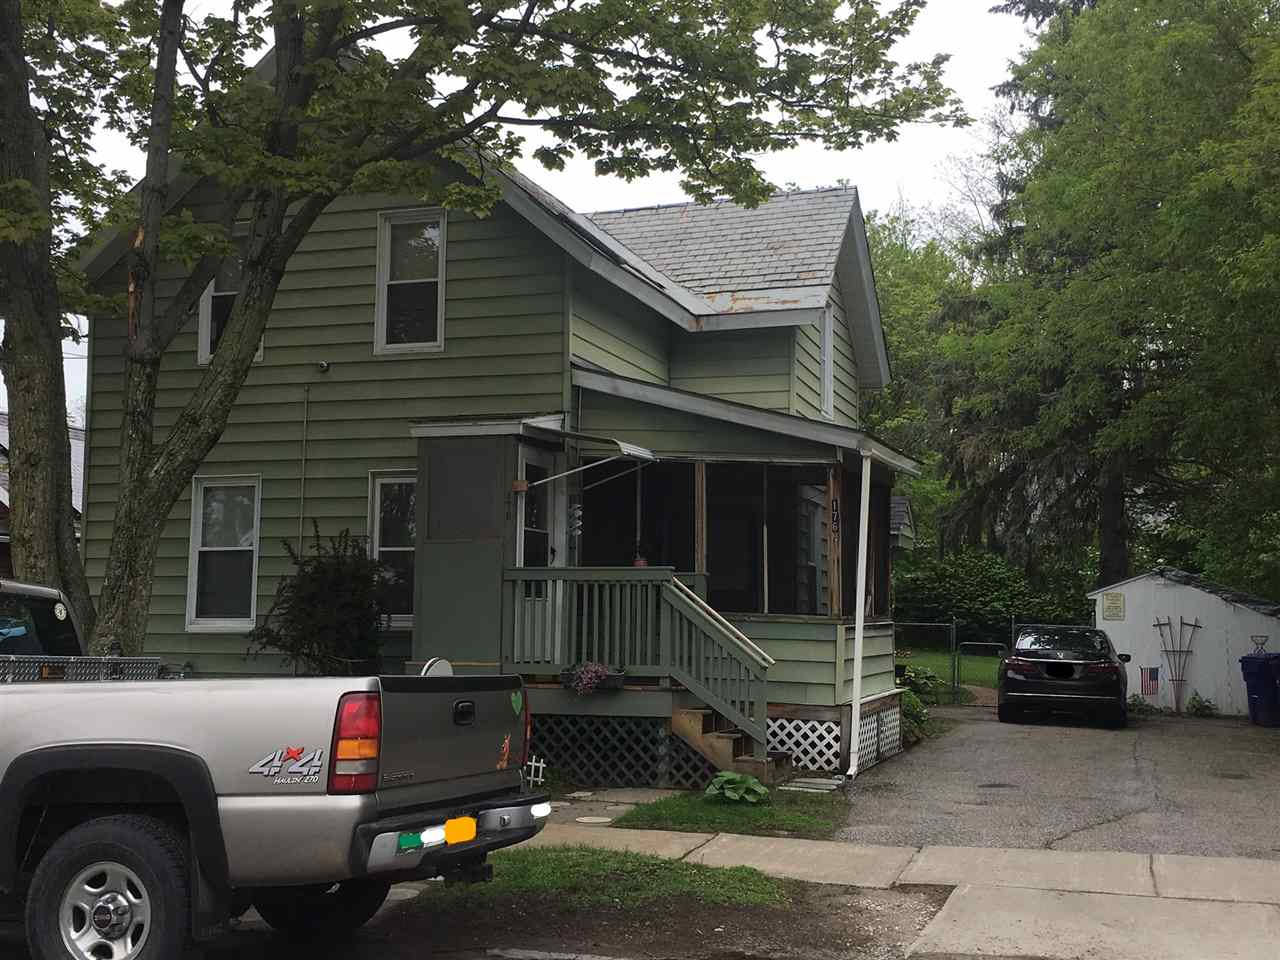 Well maintained and fully rented 3 unit multi-family in Burlington.  Nice units with all recent inspections and some recent updates in unit 2.  Located near Riverside Ave offers easy access to Burlington, Winooski, and Colchester.  If you're looking for an investment opportunity, great numbers on this one.